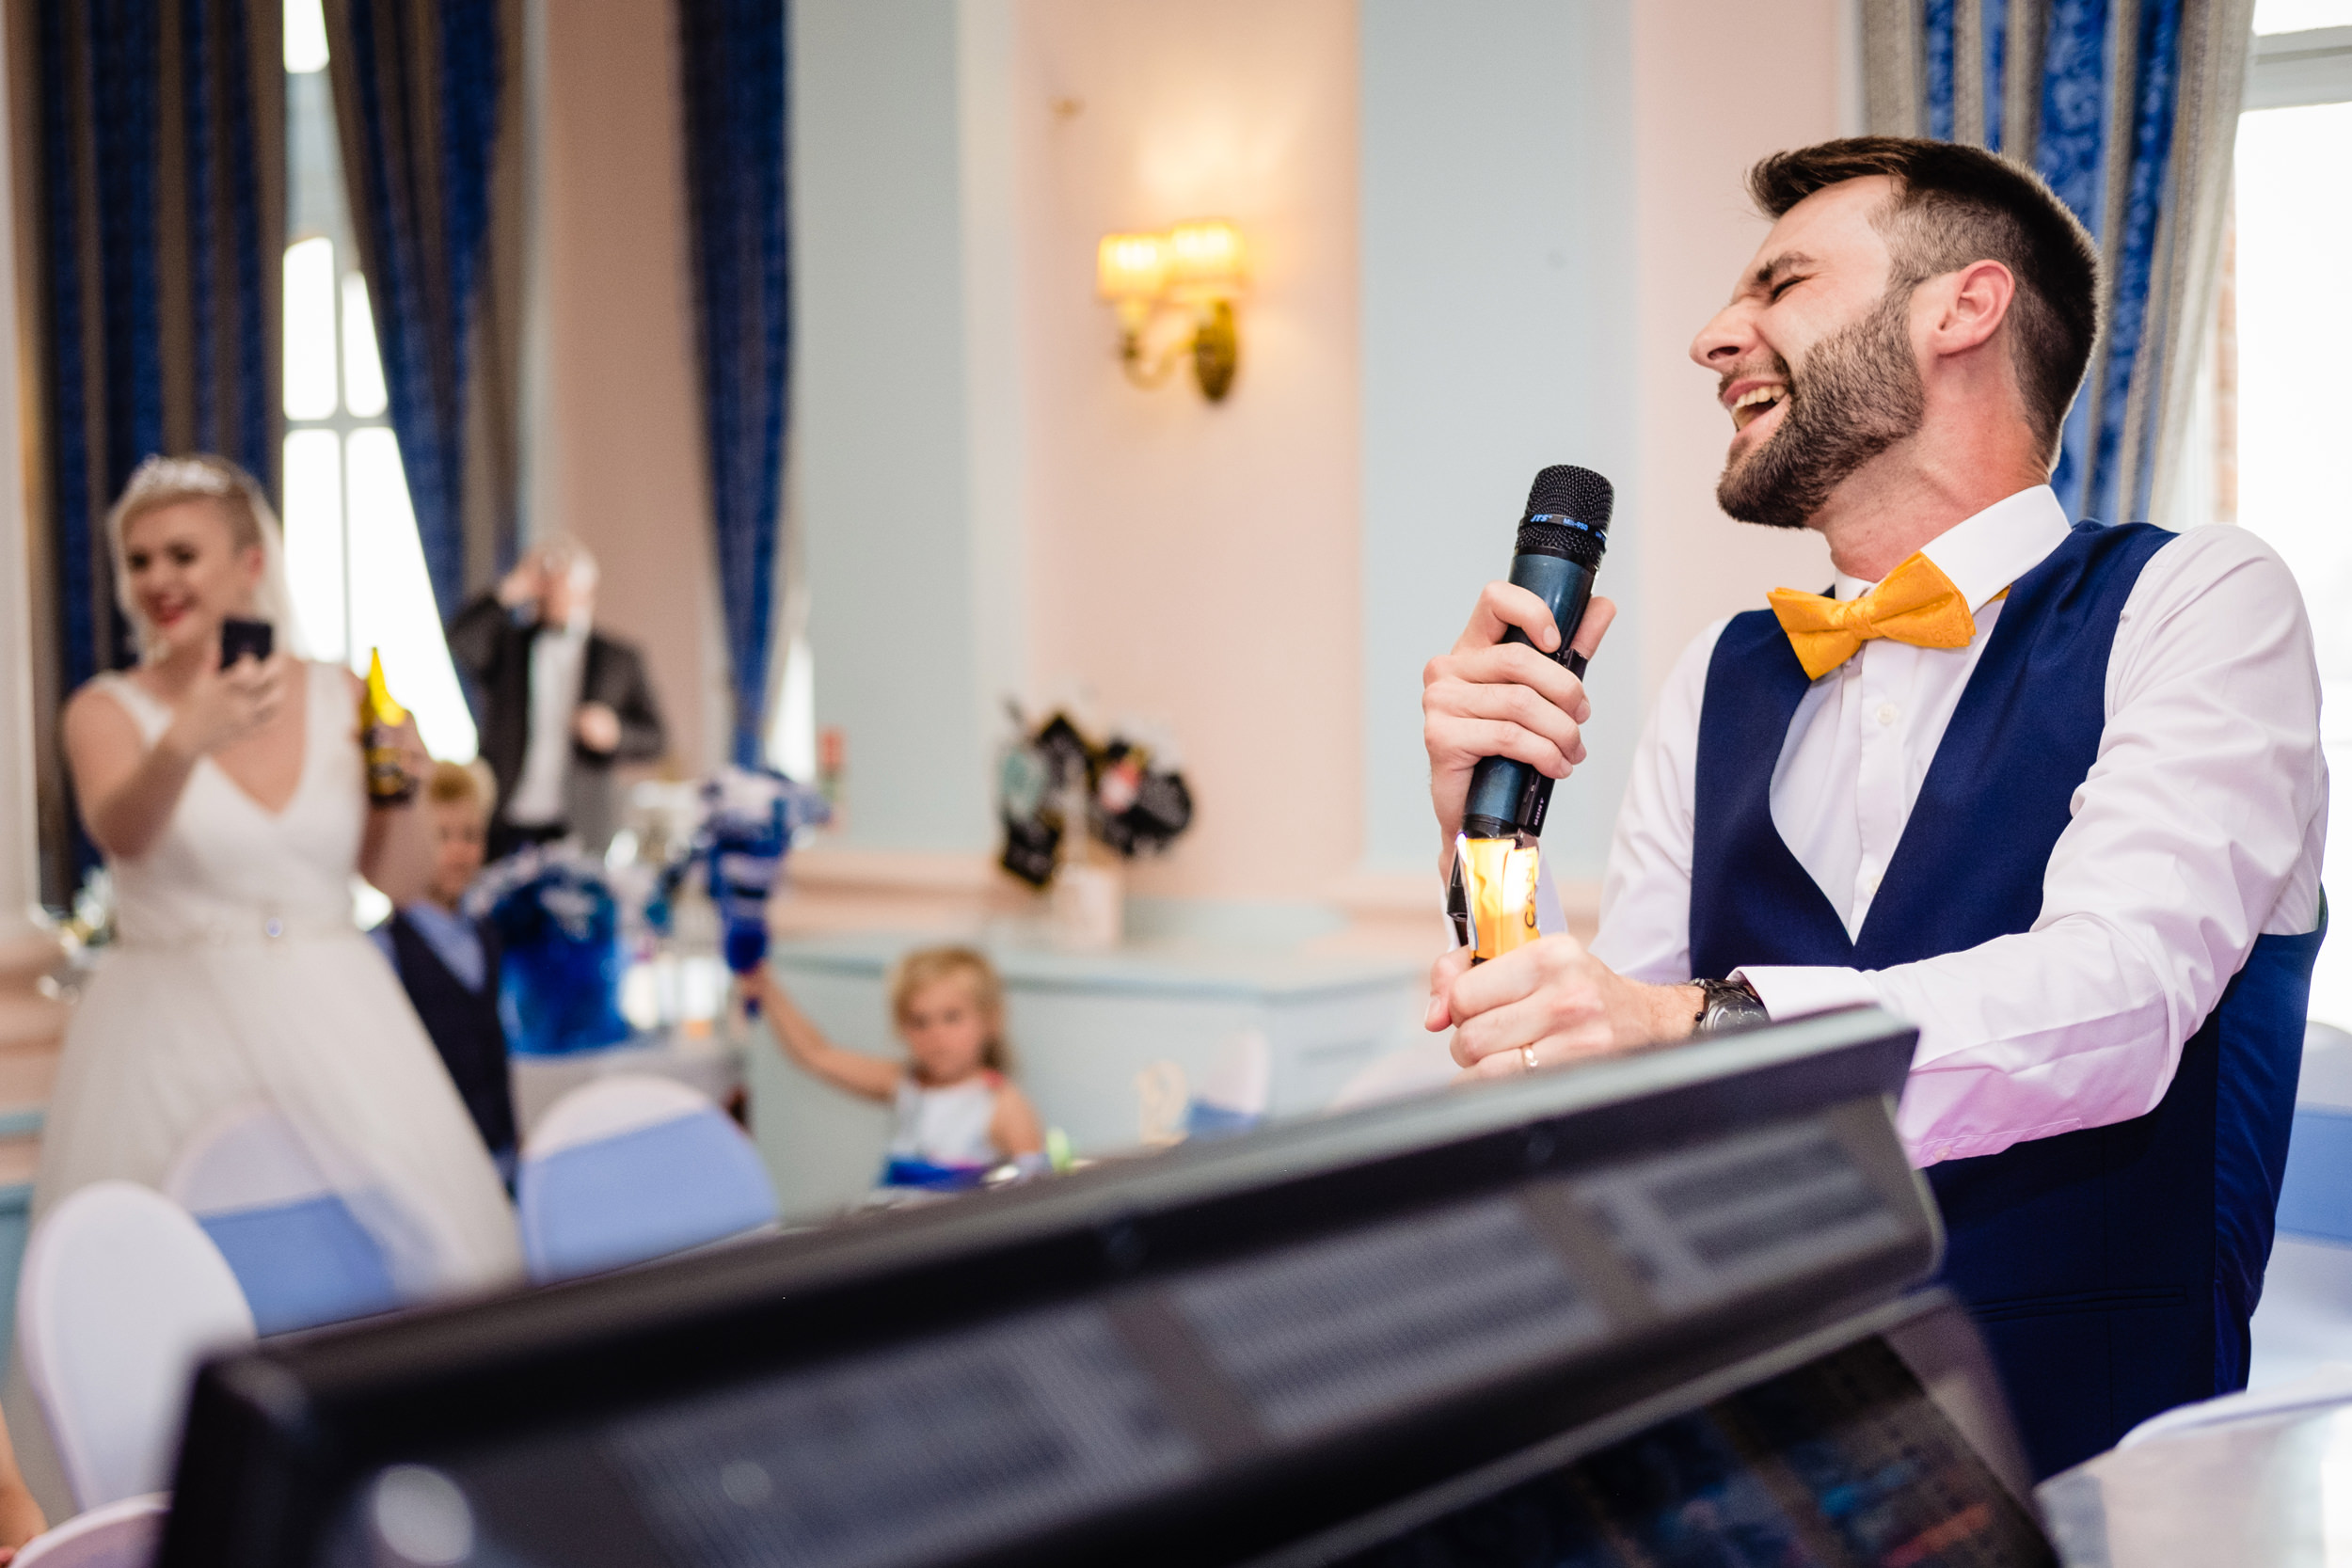 groom singing karaoke. grand hotel scarborough wedding photography by emma and rich.